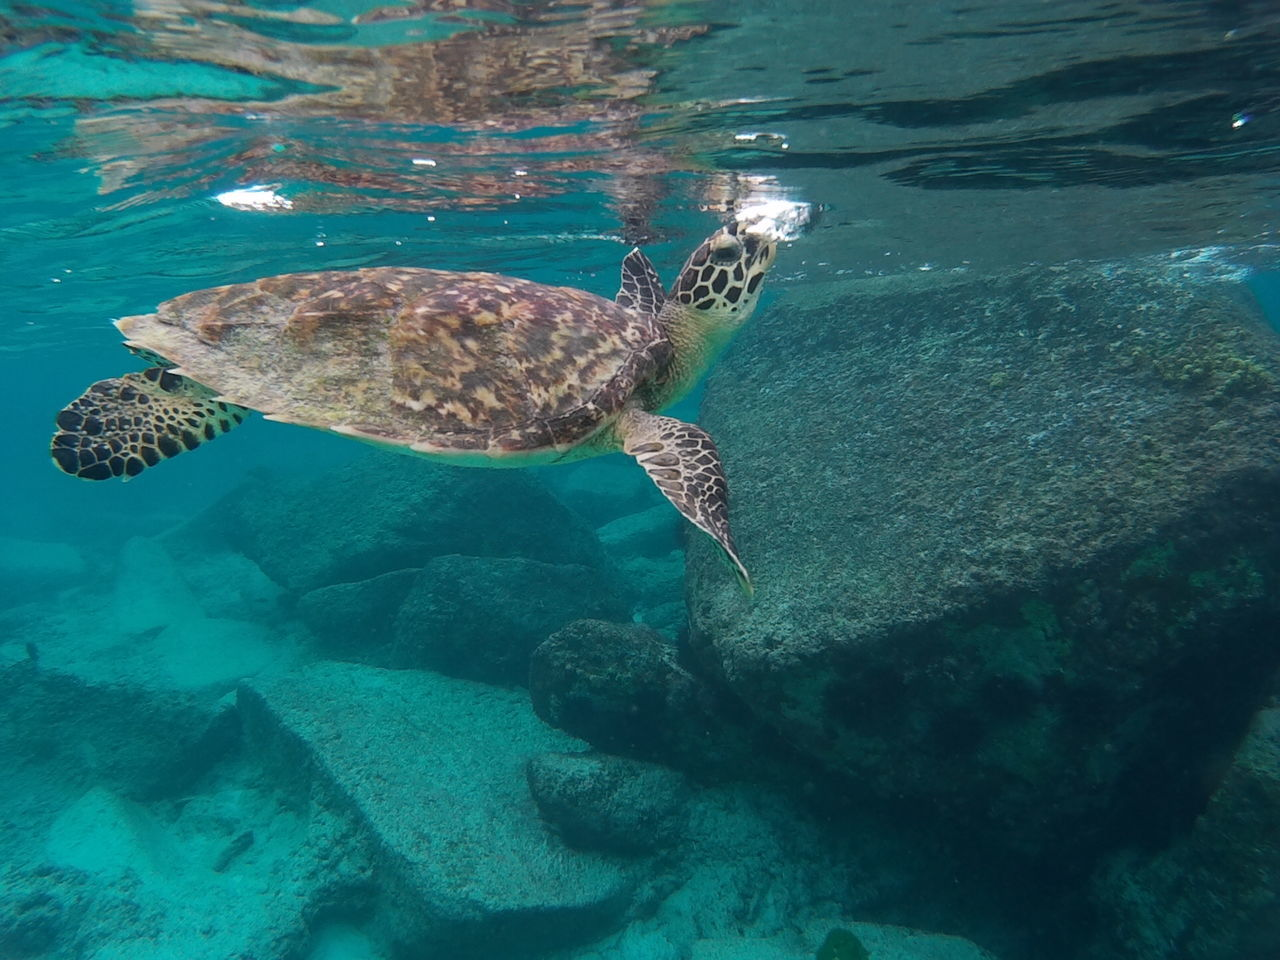 Underwater Swimming Sea Animal Themes Sea Turtle UnderSea Animals In The Wild Sea Life Water Beauty In Nature No People Tropical Climate Animal Wildlife Animals In The Wild Nature Beauty In Nature Scuba Diving Snorkeling Seychelles Seychellen Seychelles Islands UnderSea Sea Turtle